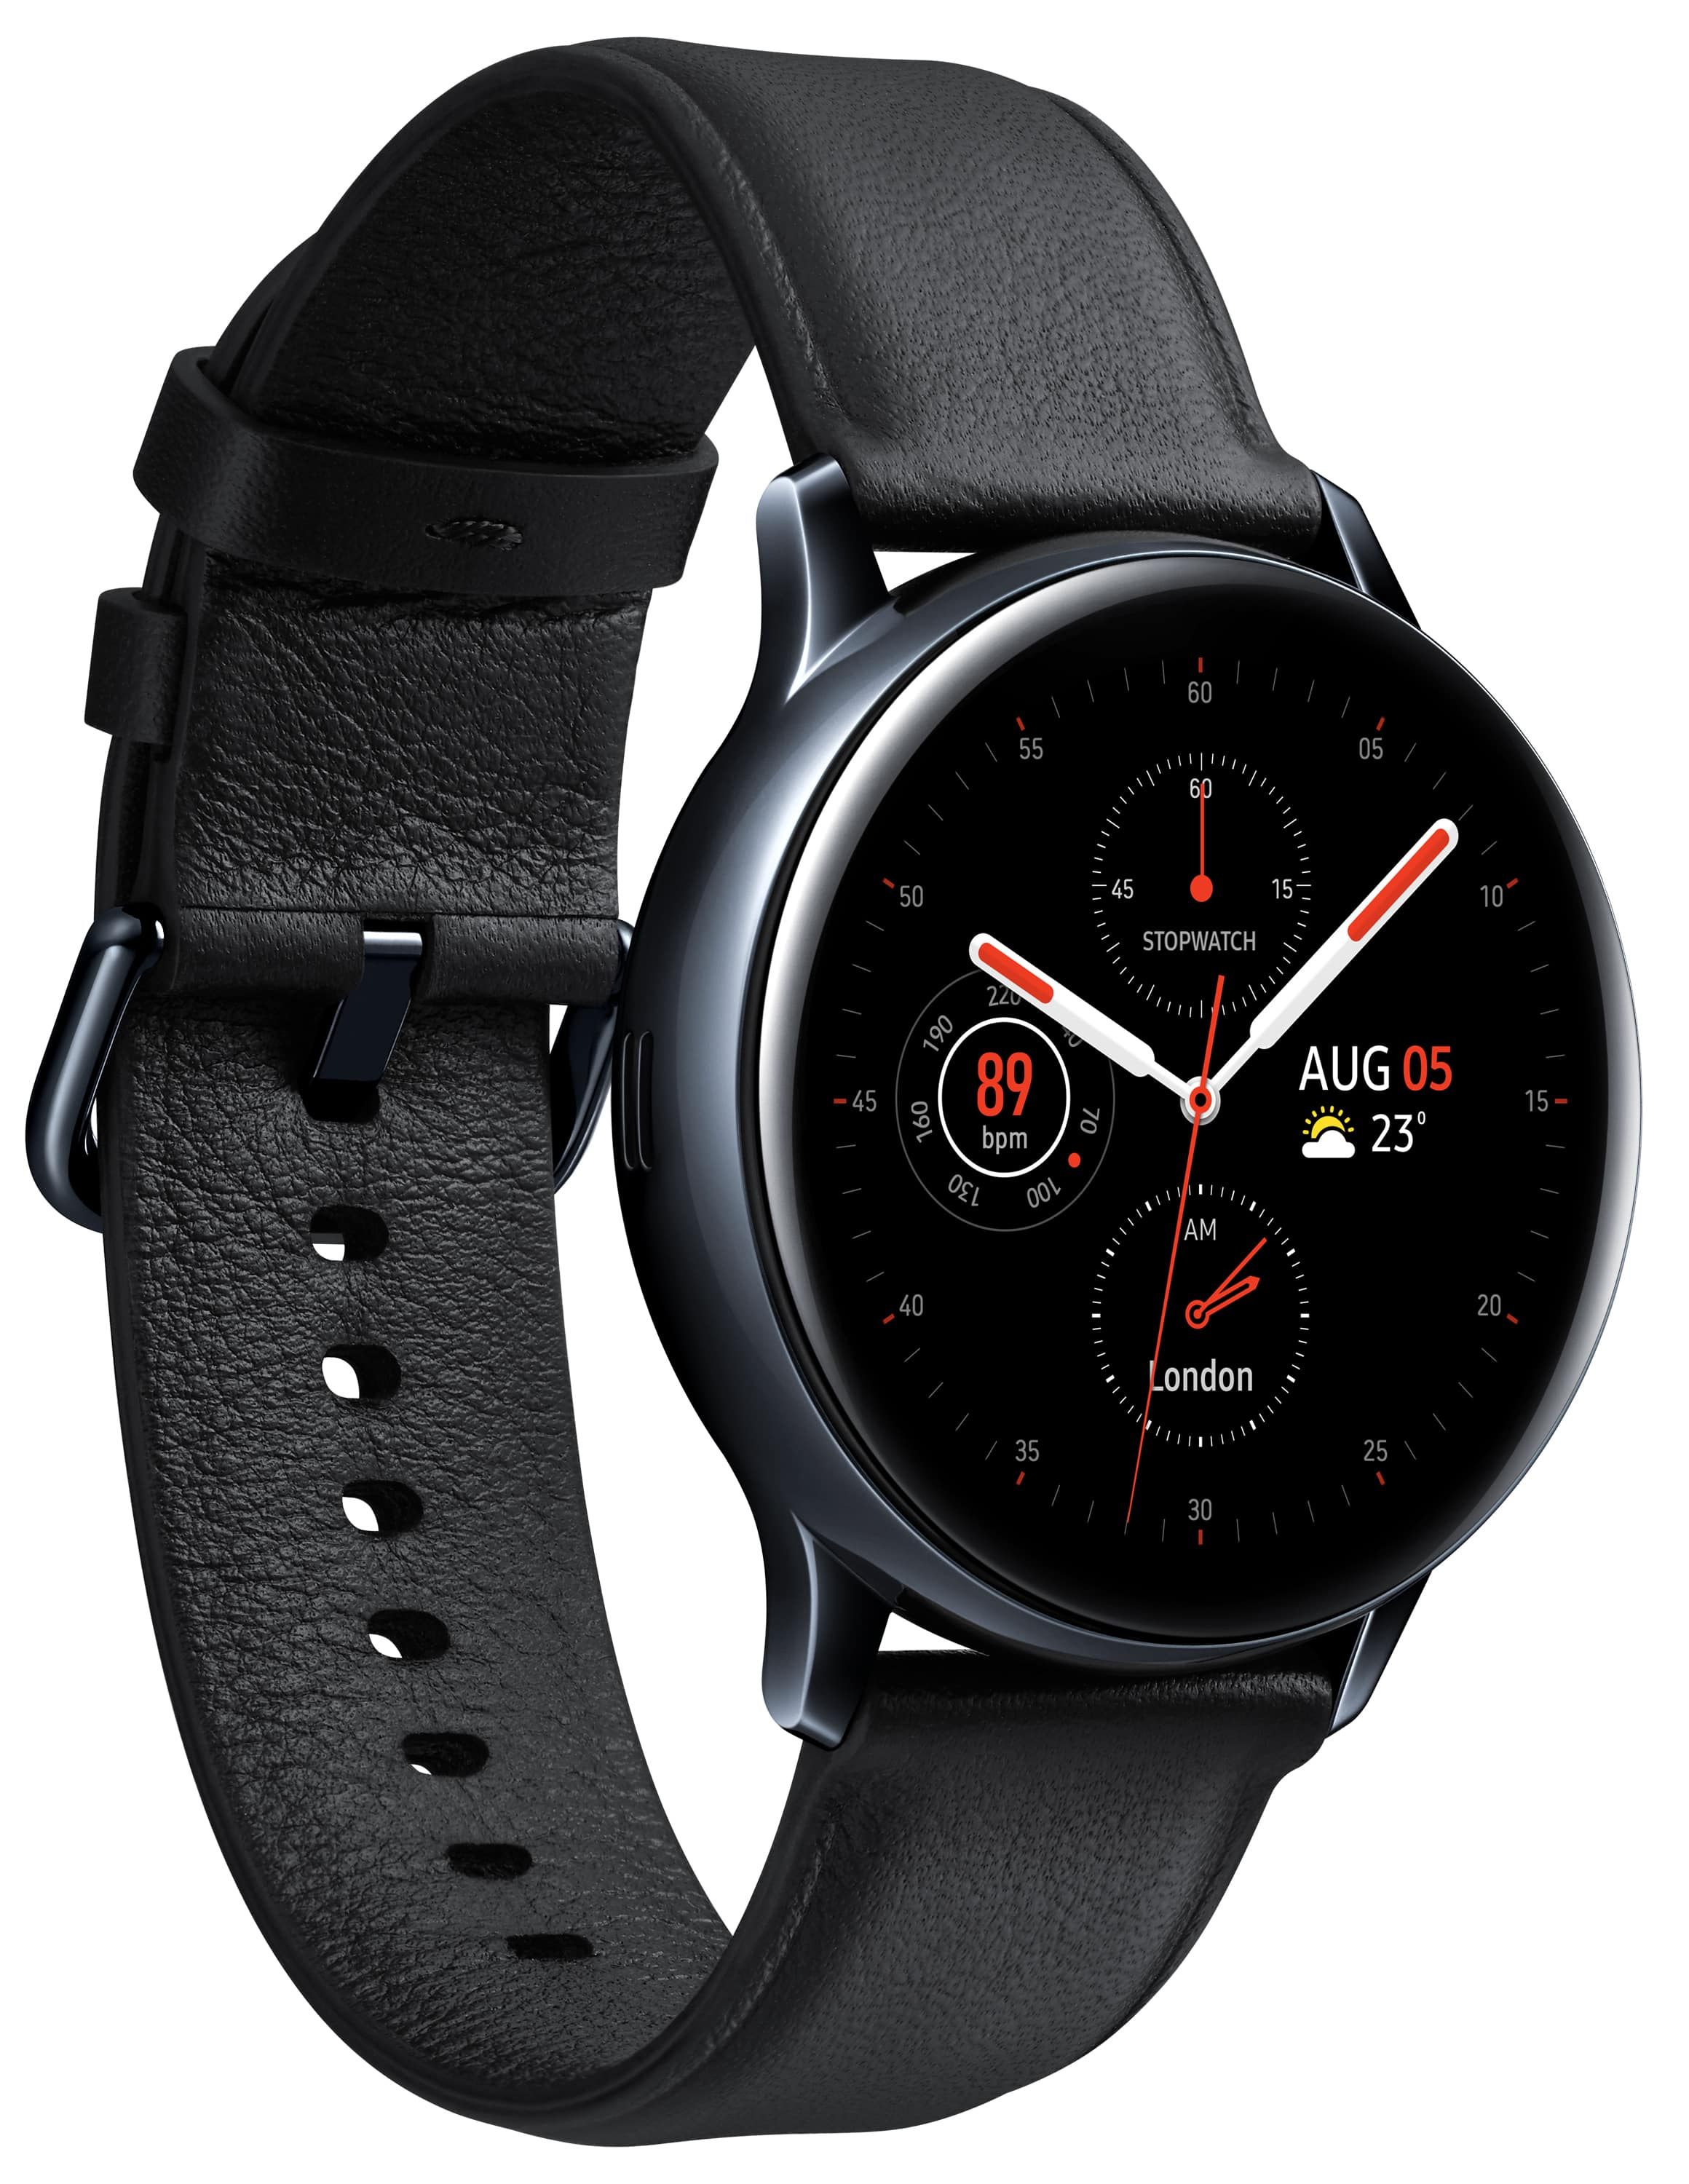 Samsung Galaxy Watch Active 2 für 449,00 Euro